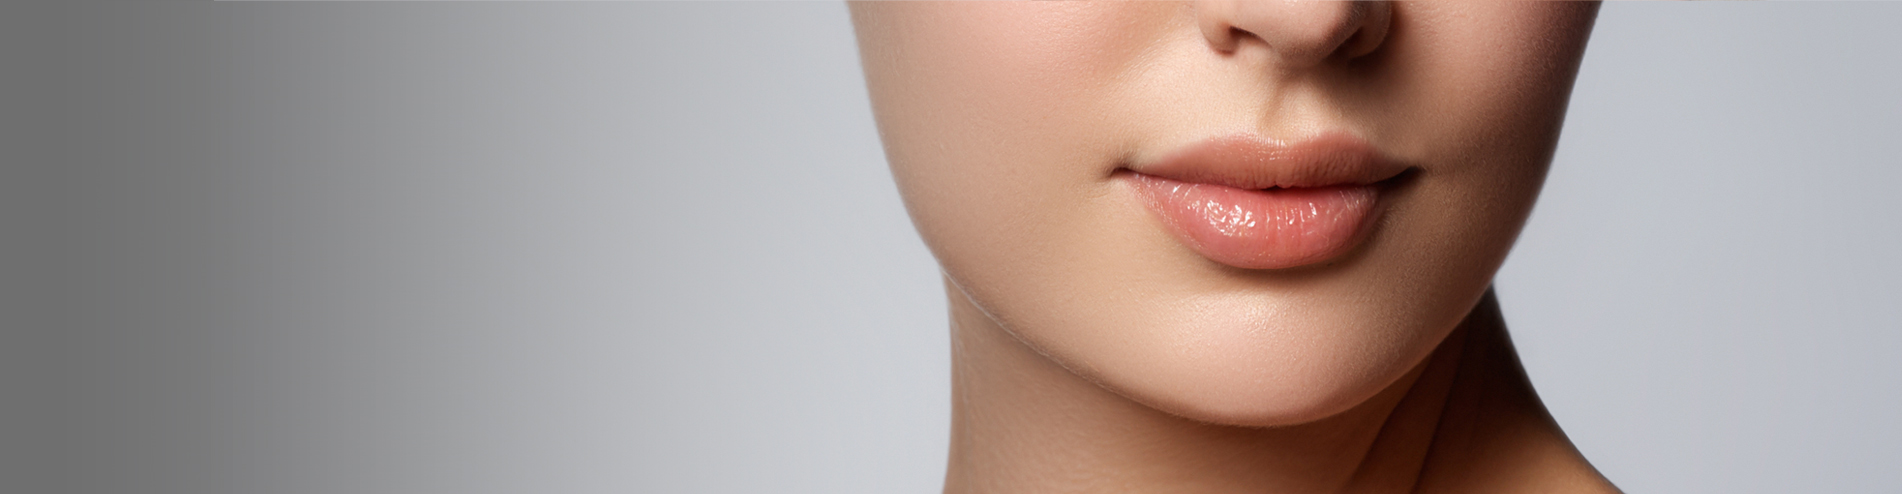 Before and After: Lip Augmentation & Reduction